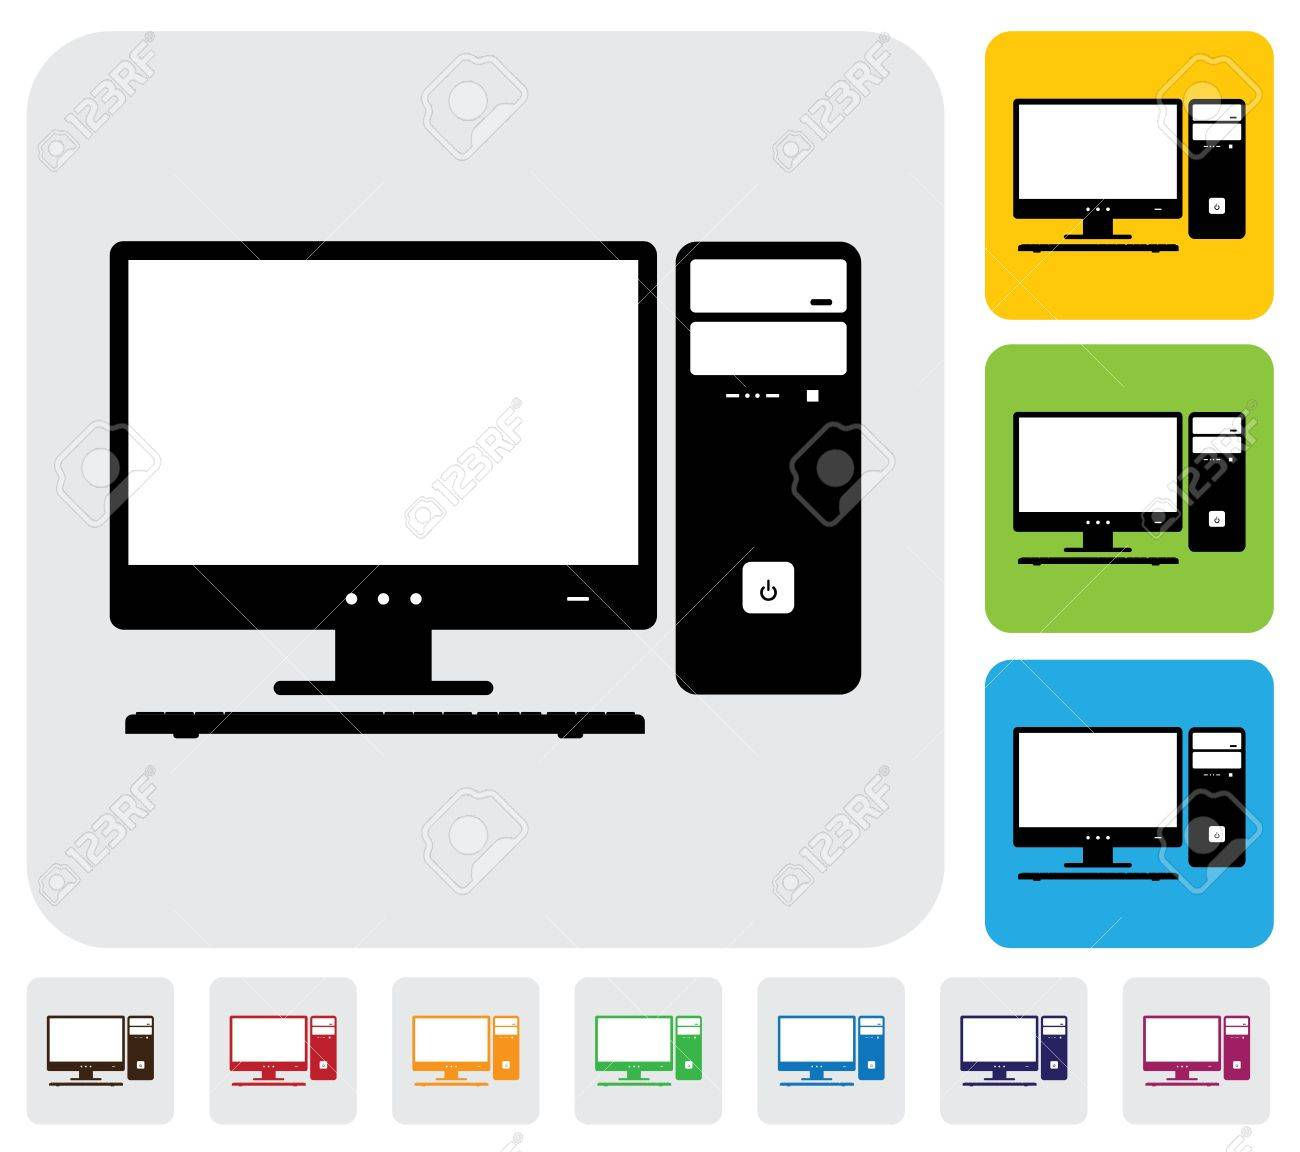 Desktop computer screen, CPU and keyboard- simple graphic  The illustration has simple colorful icons on green,orange   blue backgrounds   is useful for websites,blogs,documents,printing,etc Stock Vector - 20612032